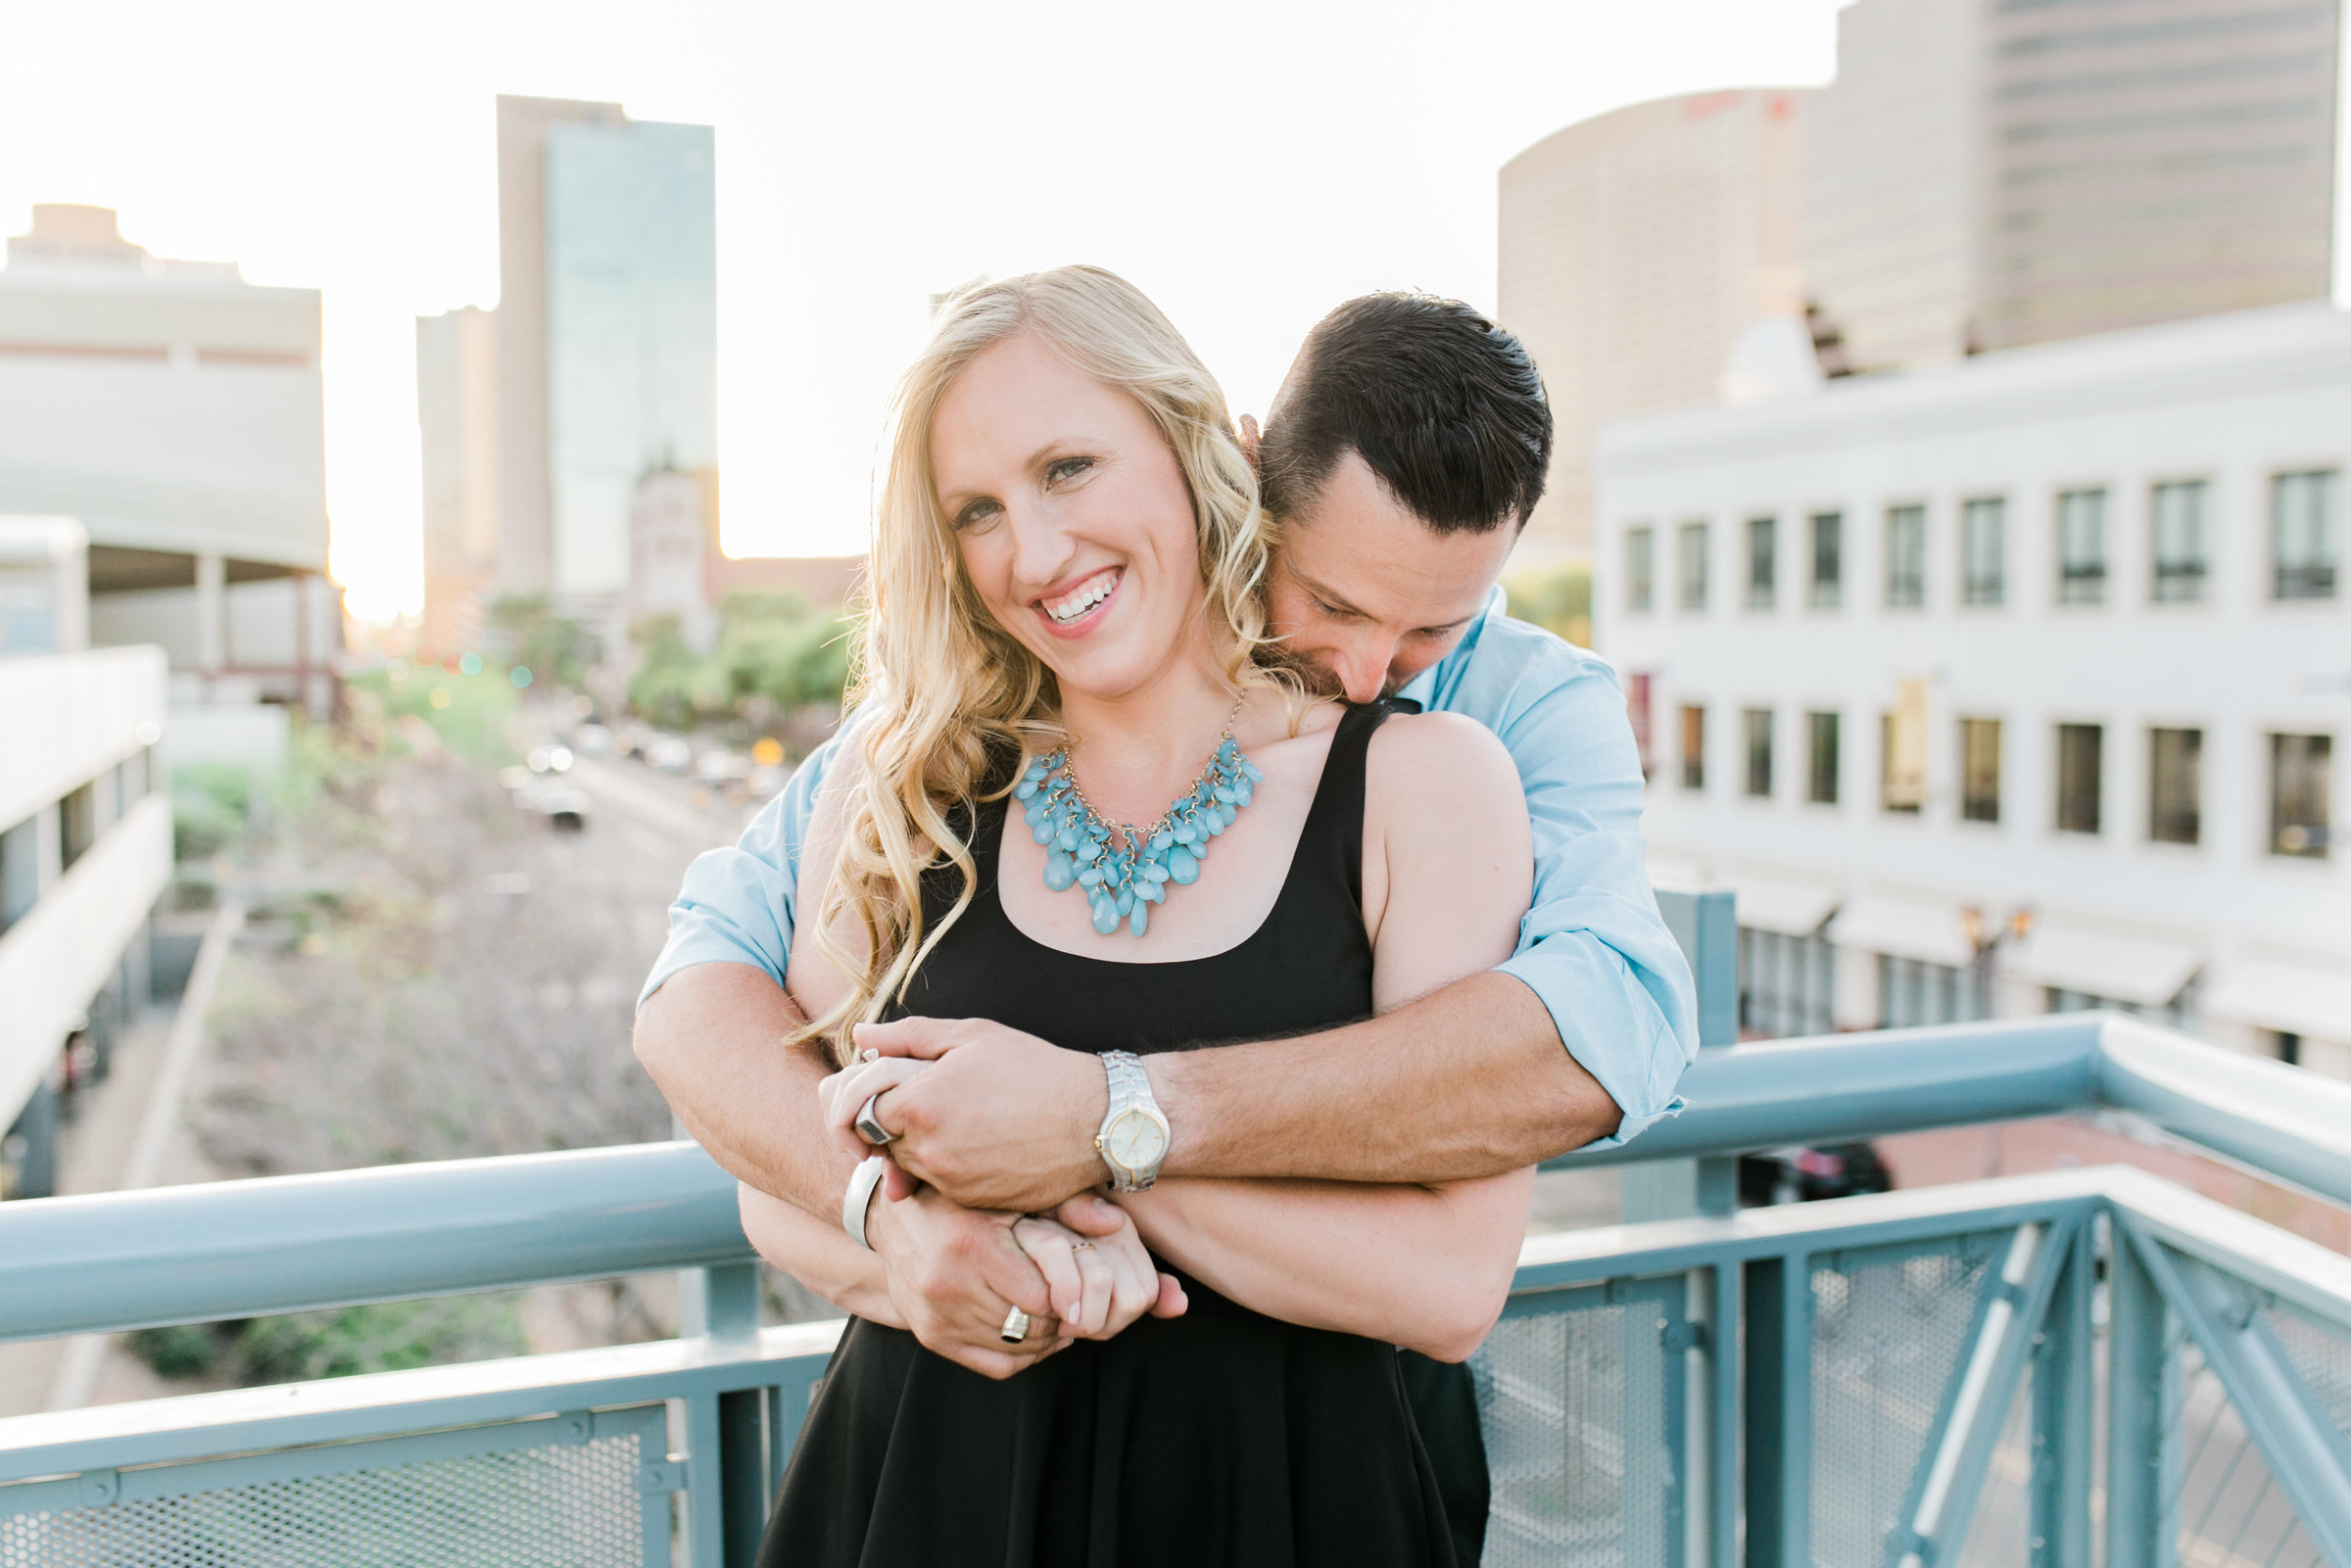 Karlie Colleen Photography - Liz & Lorenzo & Engagement Session-170